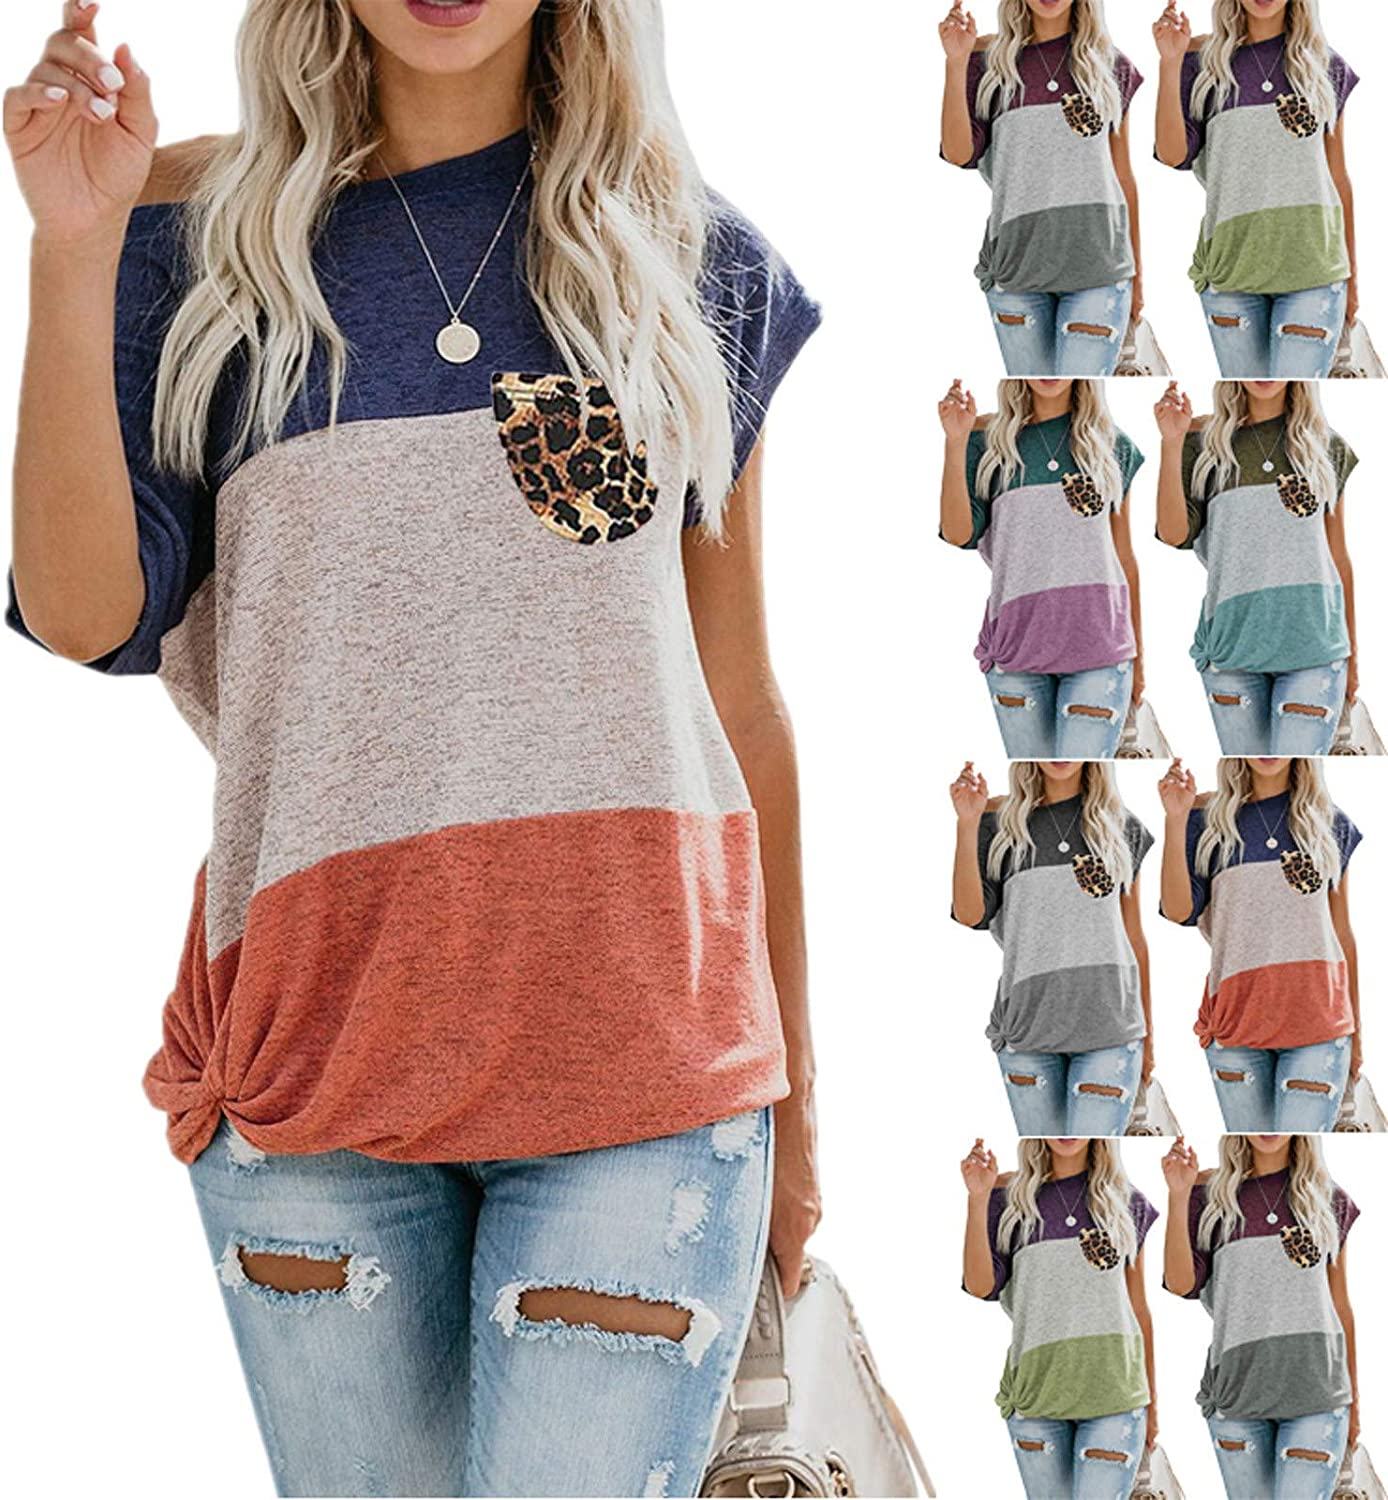 OR Plus Size T Shirts Women, Leopard Printed Women's Short Sleeve Patchwork Casual T-Shirt Blouse Tops Pocket